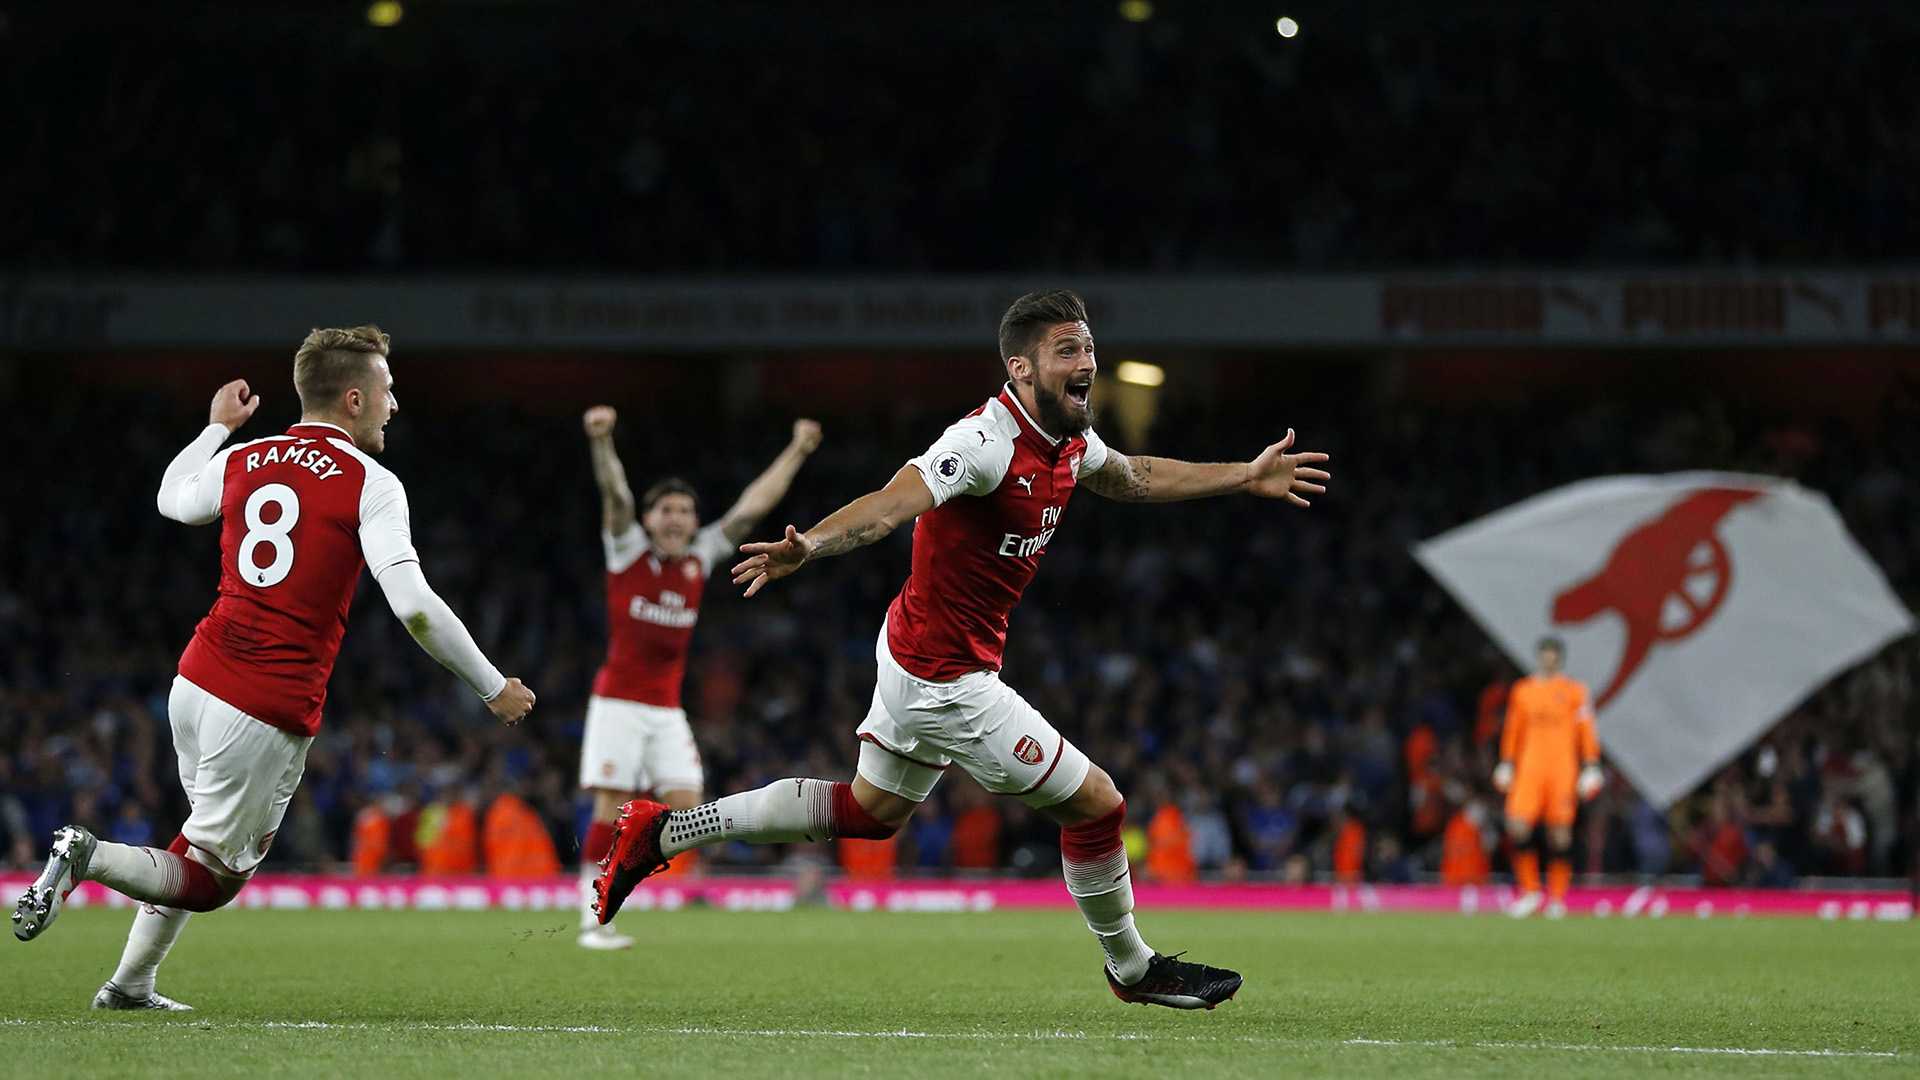 Arsenal beat Leicester City 4-3 in Premier League opener